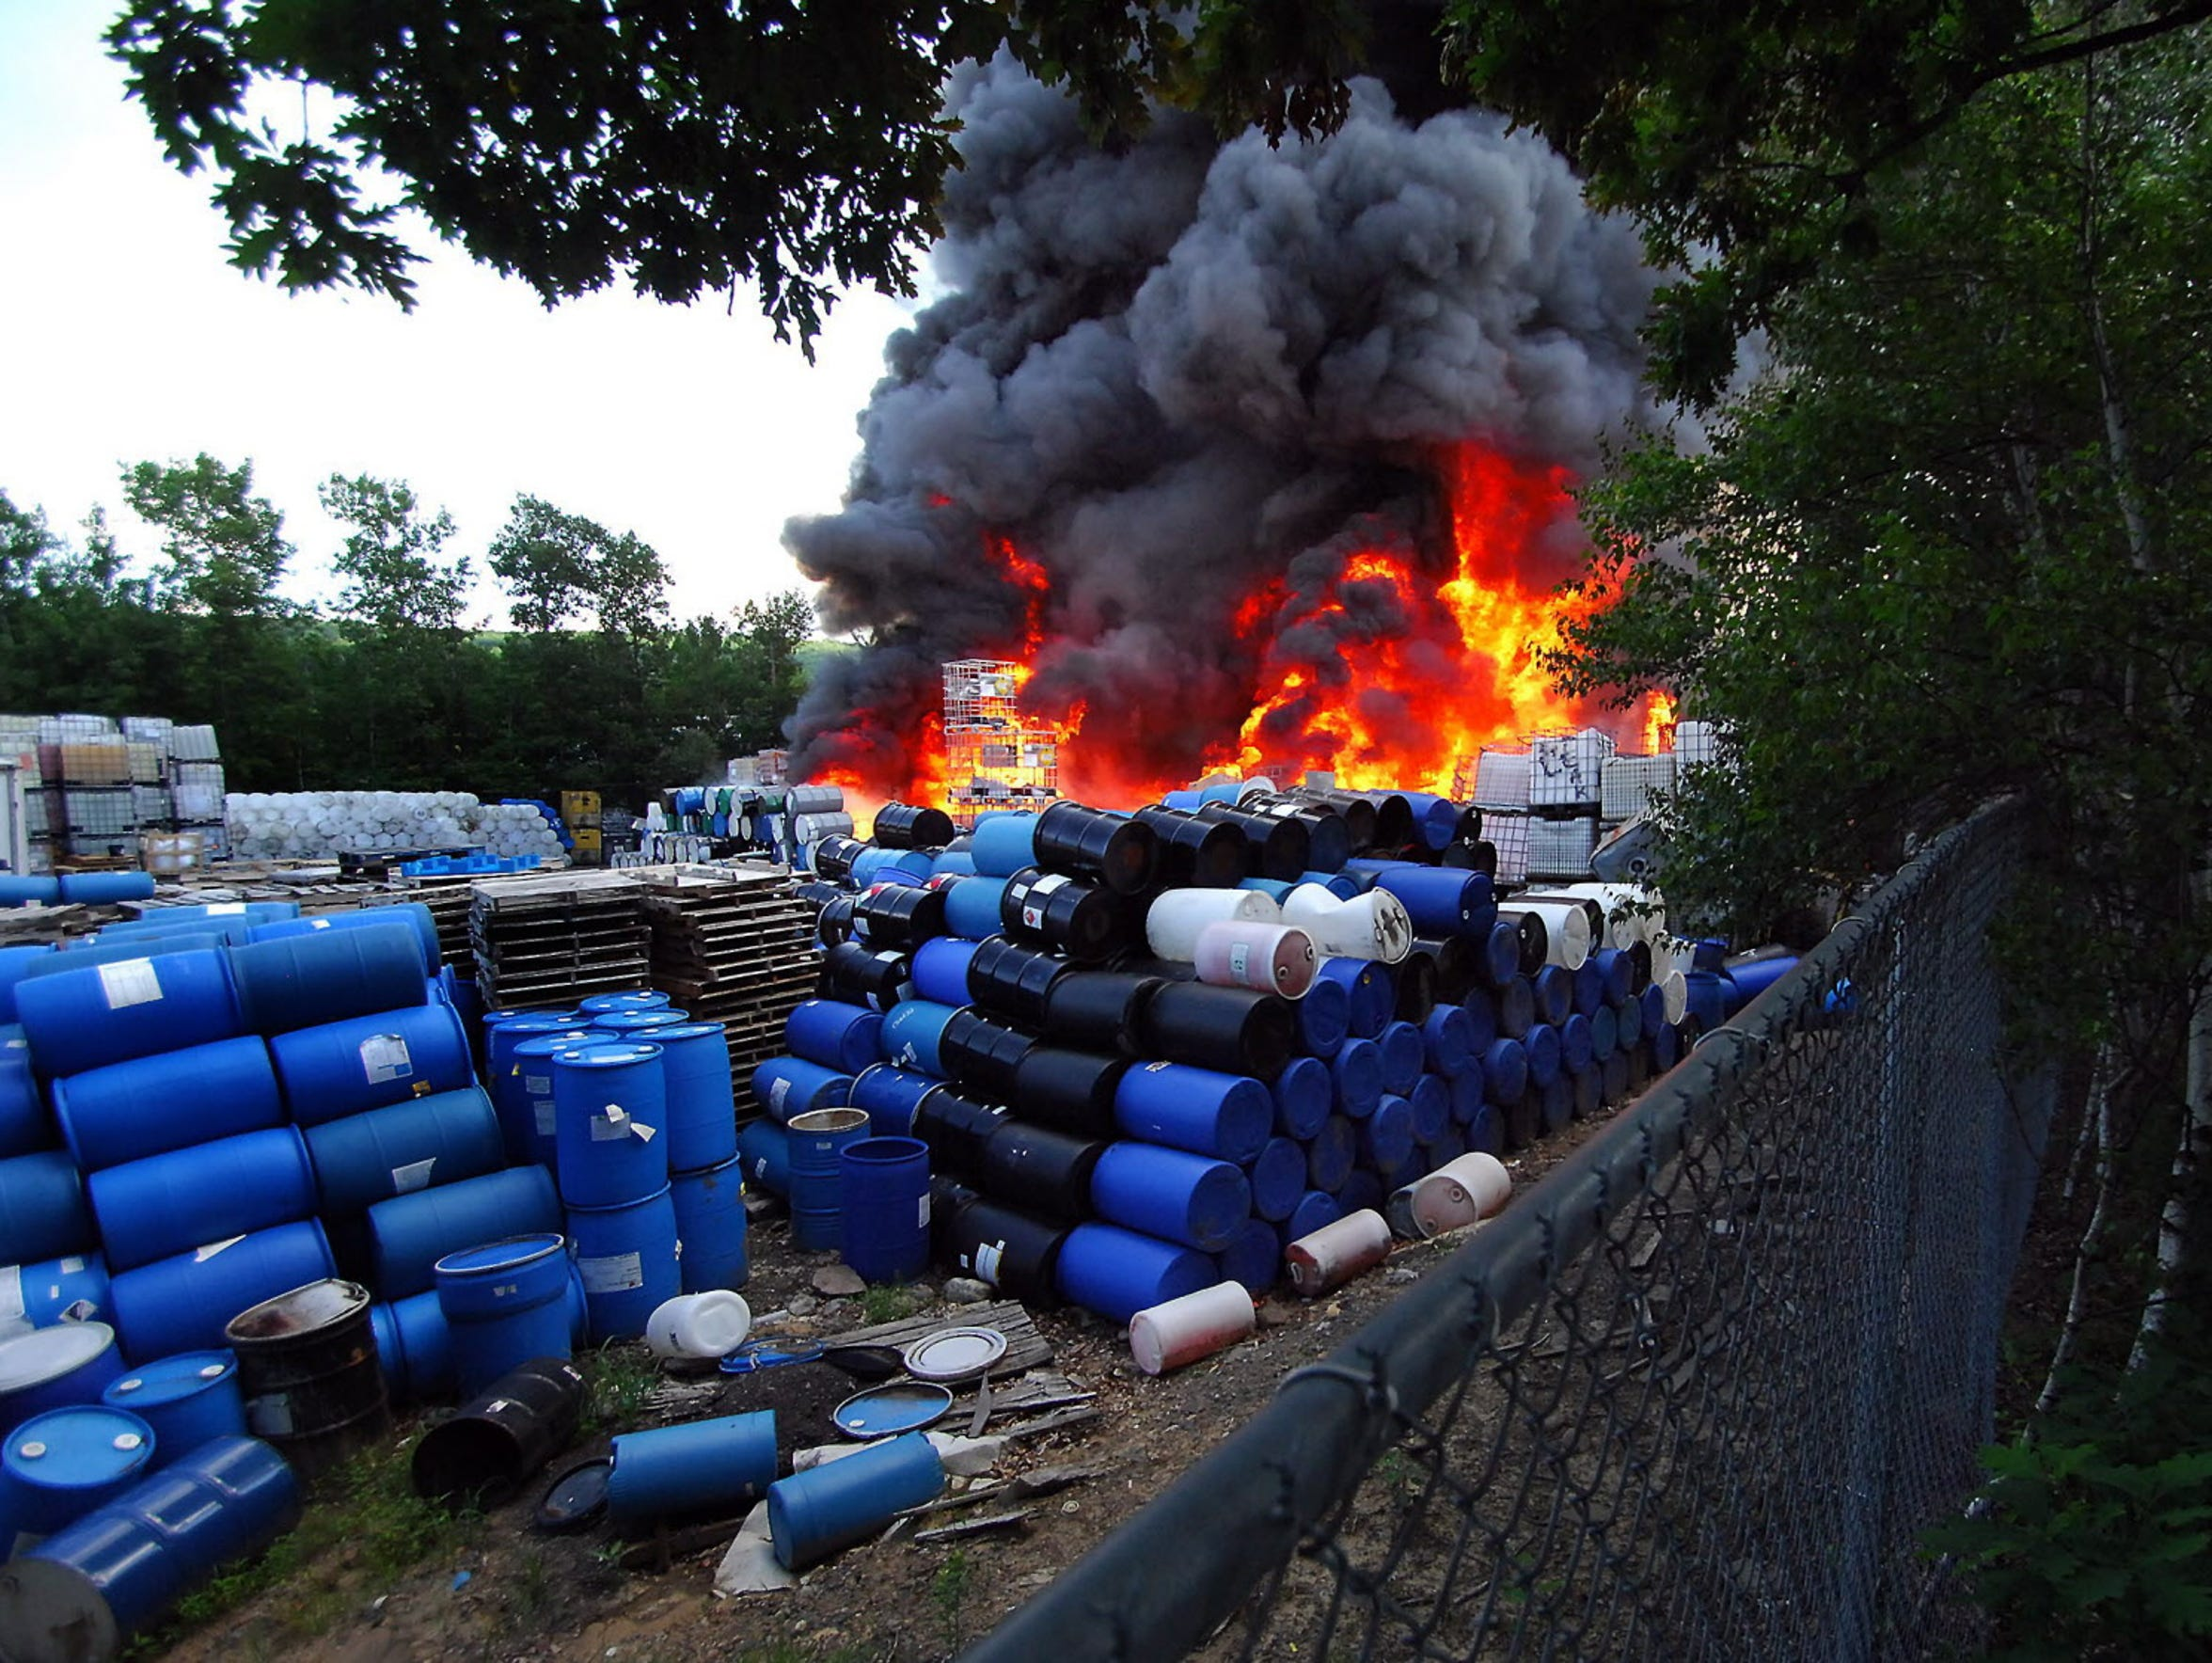 A June 2014 fire at Scranton Cooperage, in Jessup,